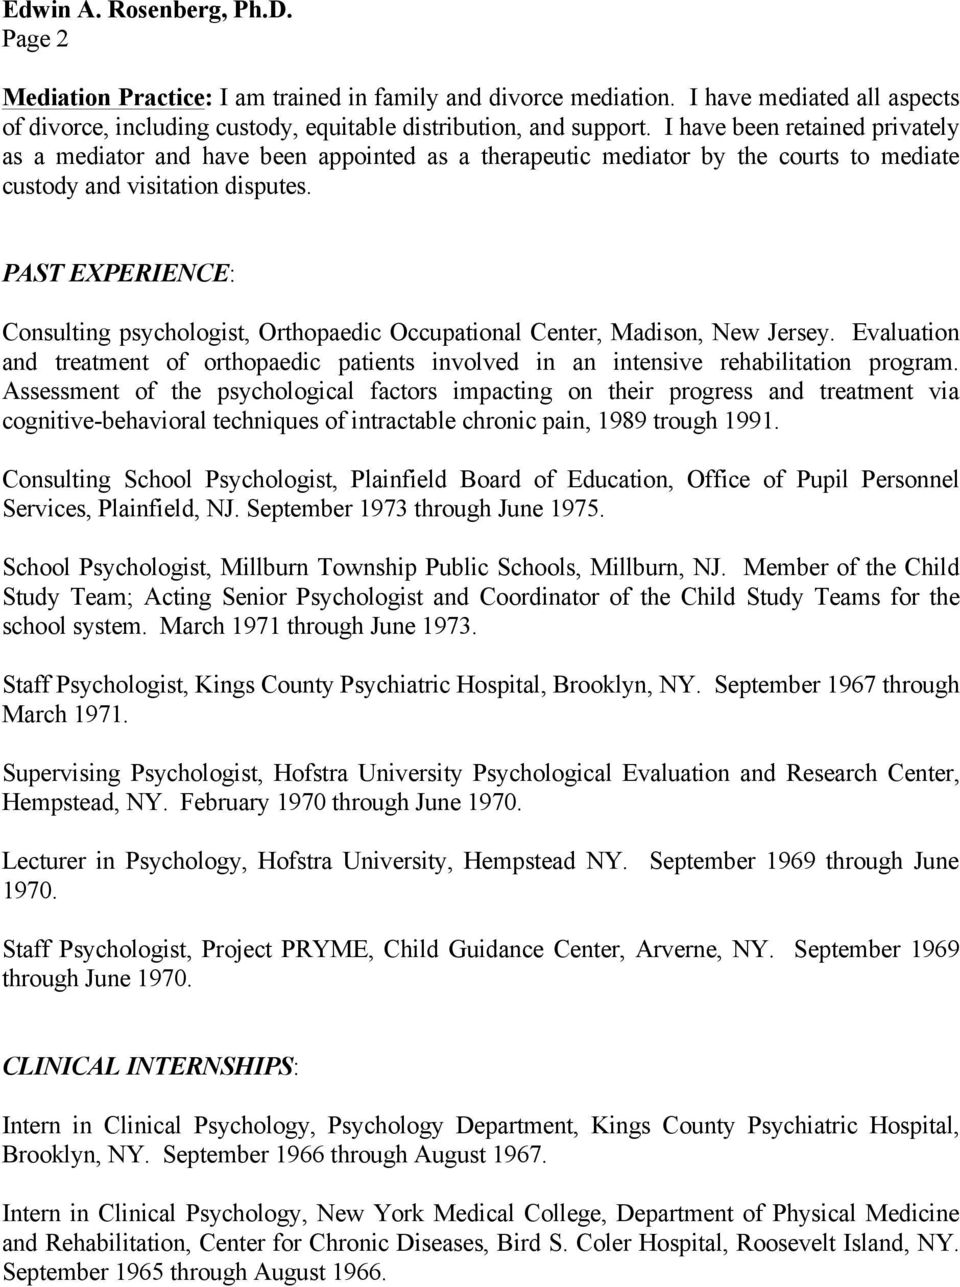 PAST EXPERIENCE: Consulting psychologist, Orthopaedic Occupational Center, Madison, New Jersey. Evaluation and treatment of orthopaedic patients involved in an intensive rehabilitation program.